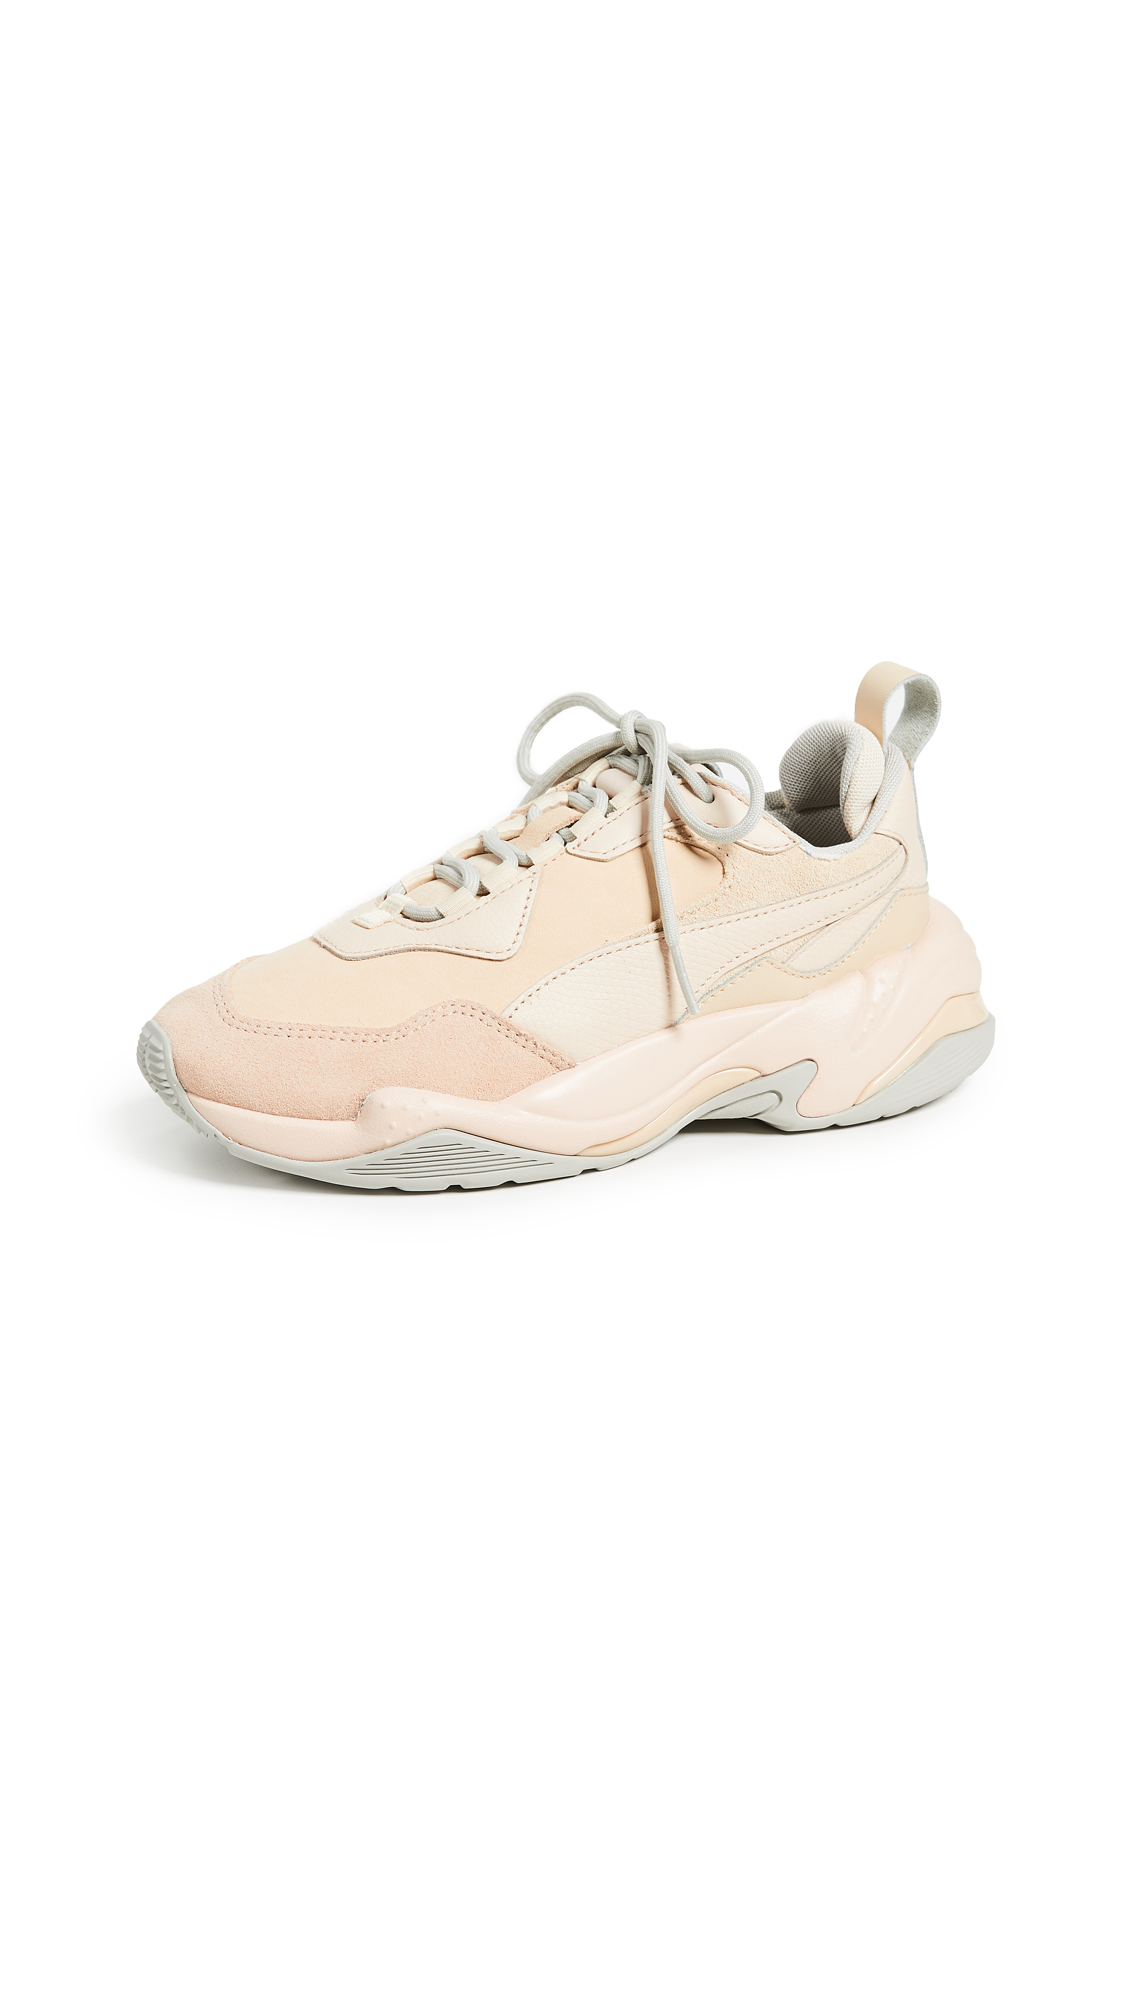 PUMA Thunder Desert Sneakers - Natural Vachetta/Cream Tan